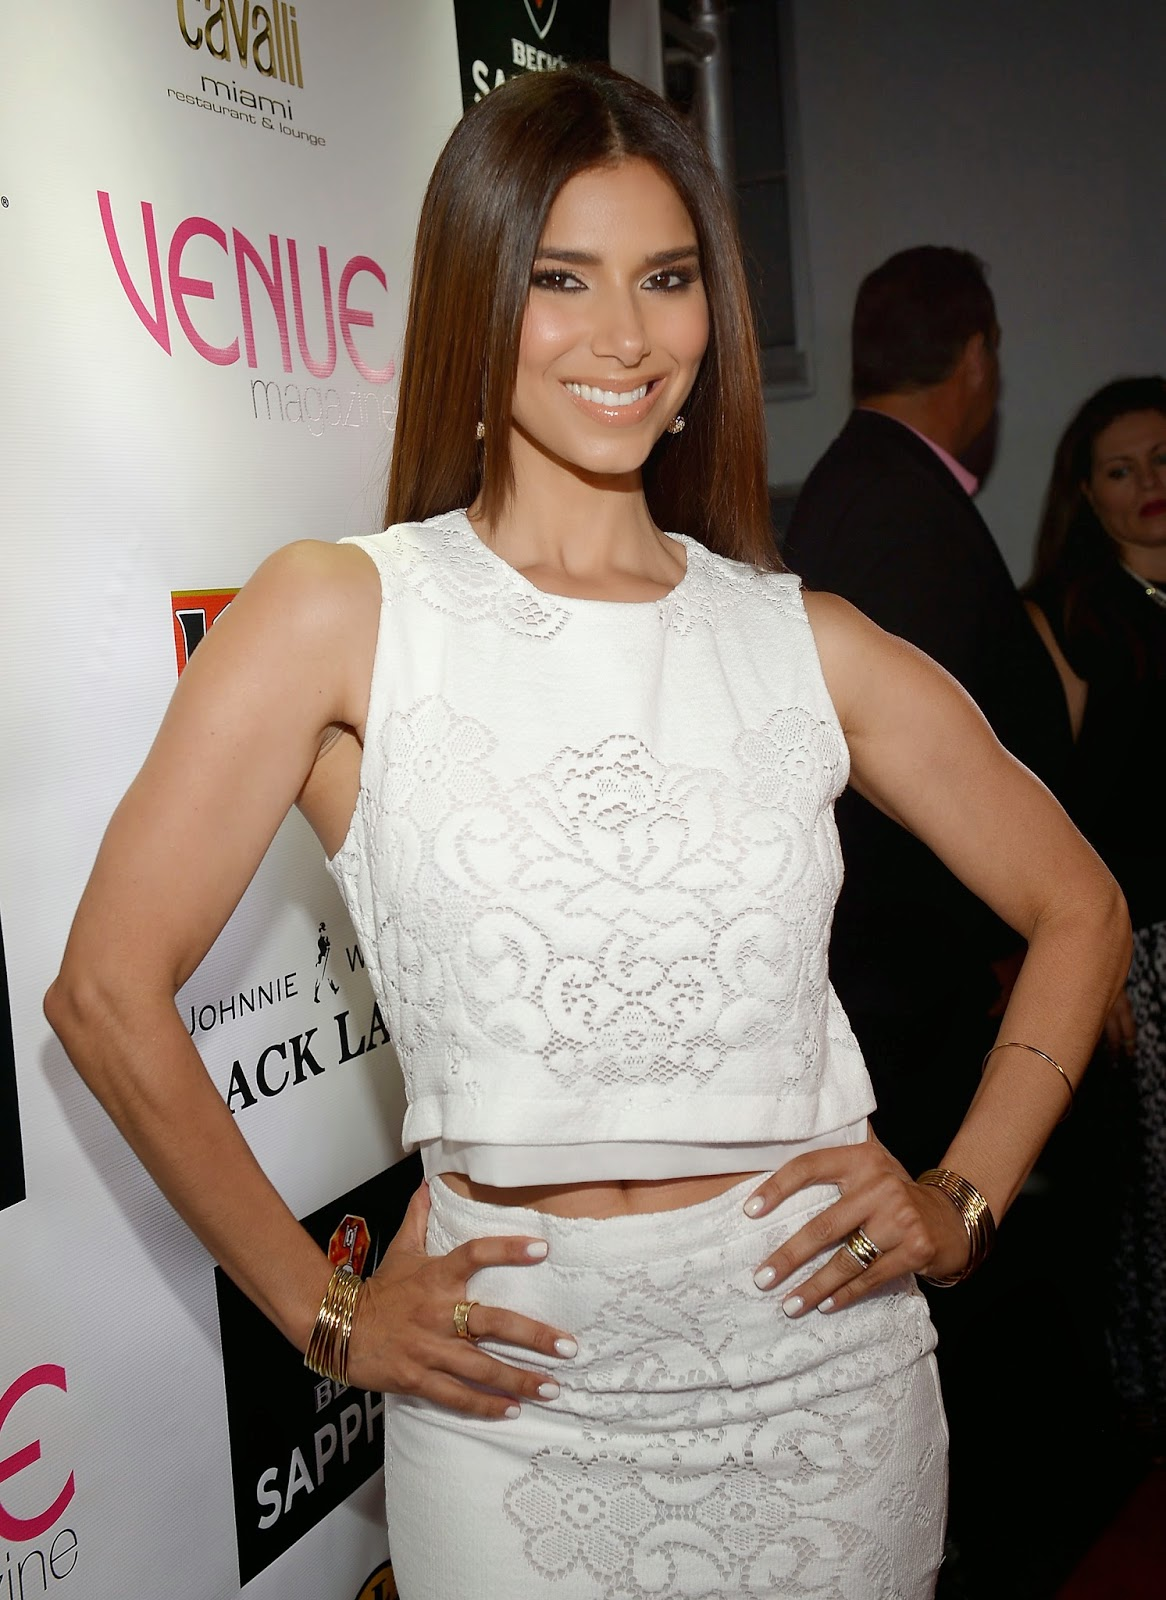 Roselyn Sanchez arrives for Venue Magazine July/August Cover Party at Cavalli Miami on July 16, 2014 in Miami Beach, Florida